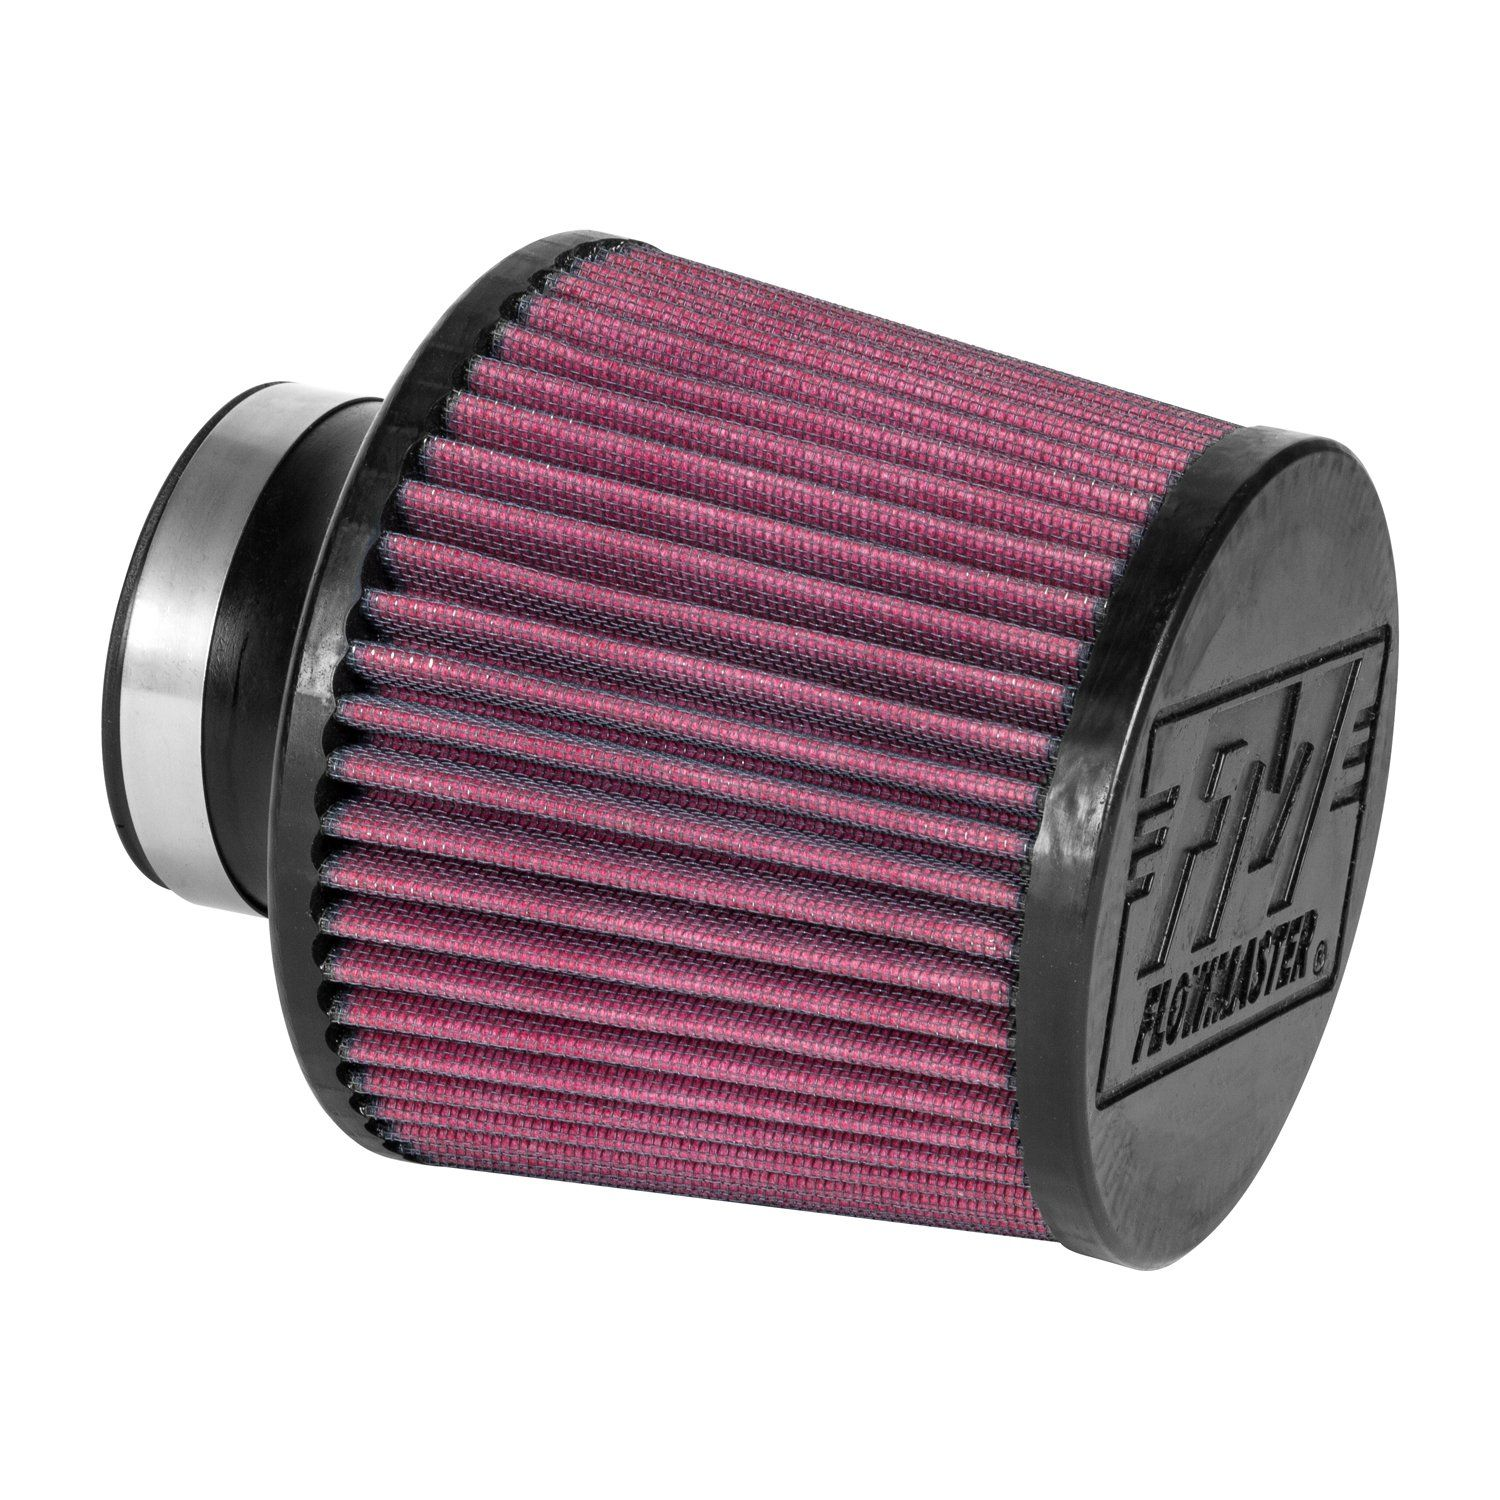 Flowmaster 615013 Performance Air Intake Filter